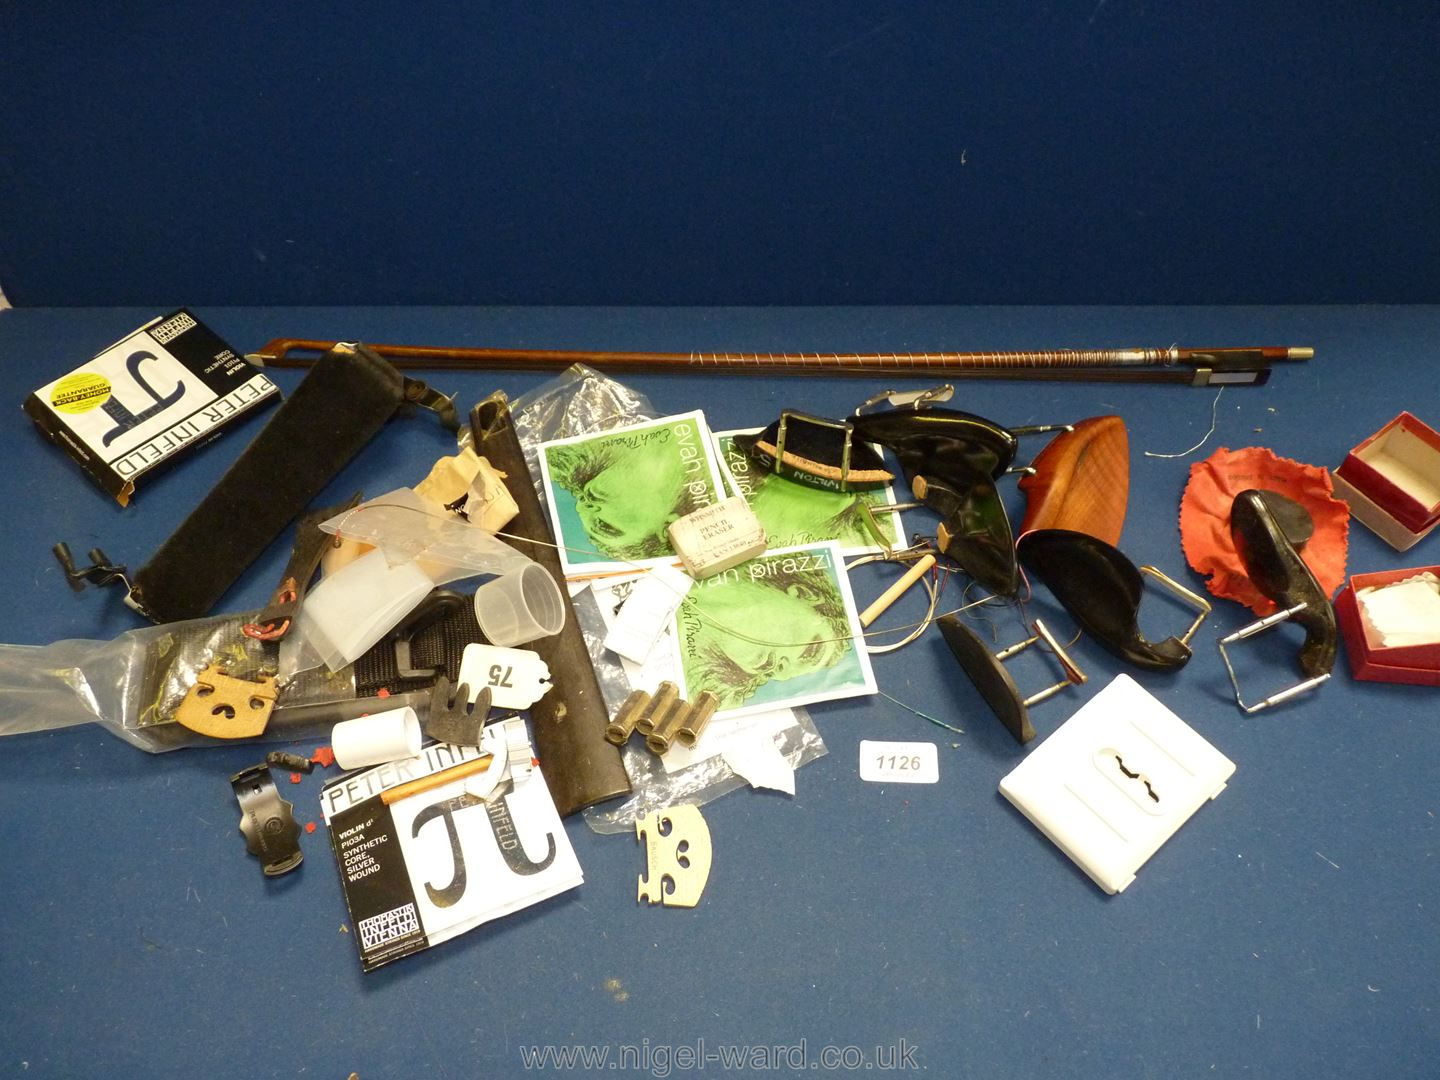 A box of violin components including rests, strings, resin, bow etc.